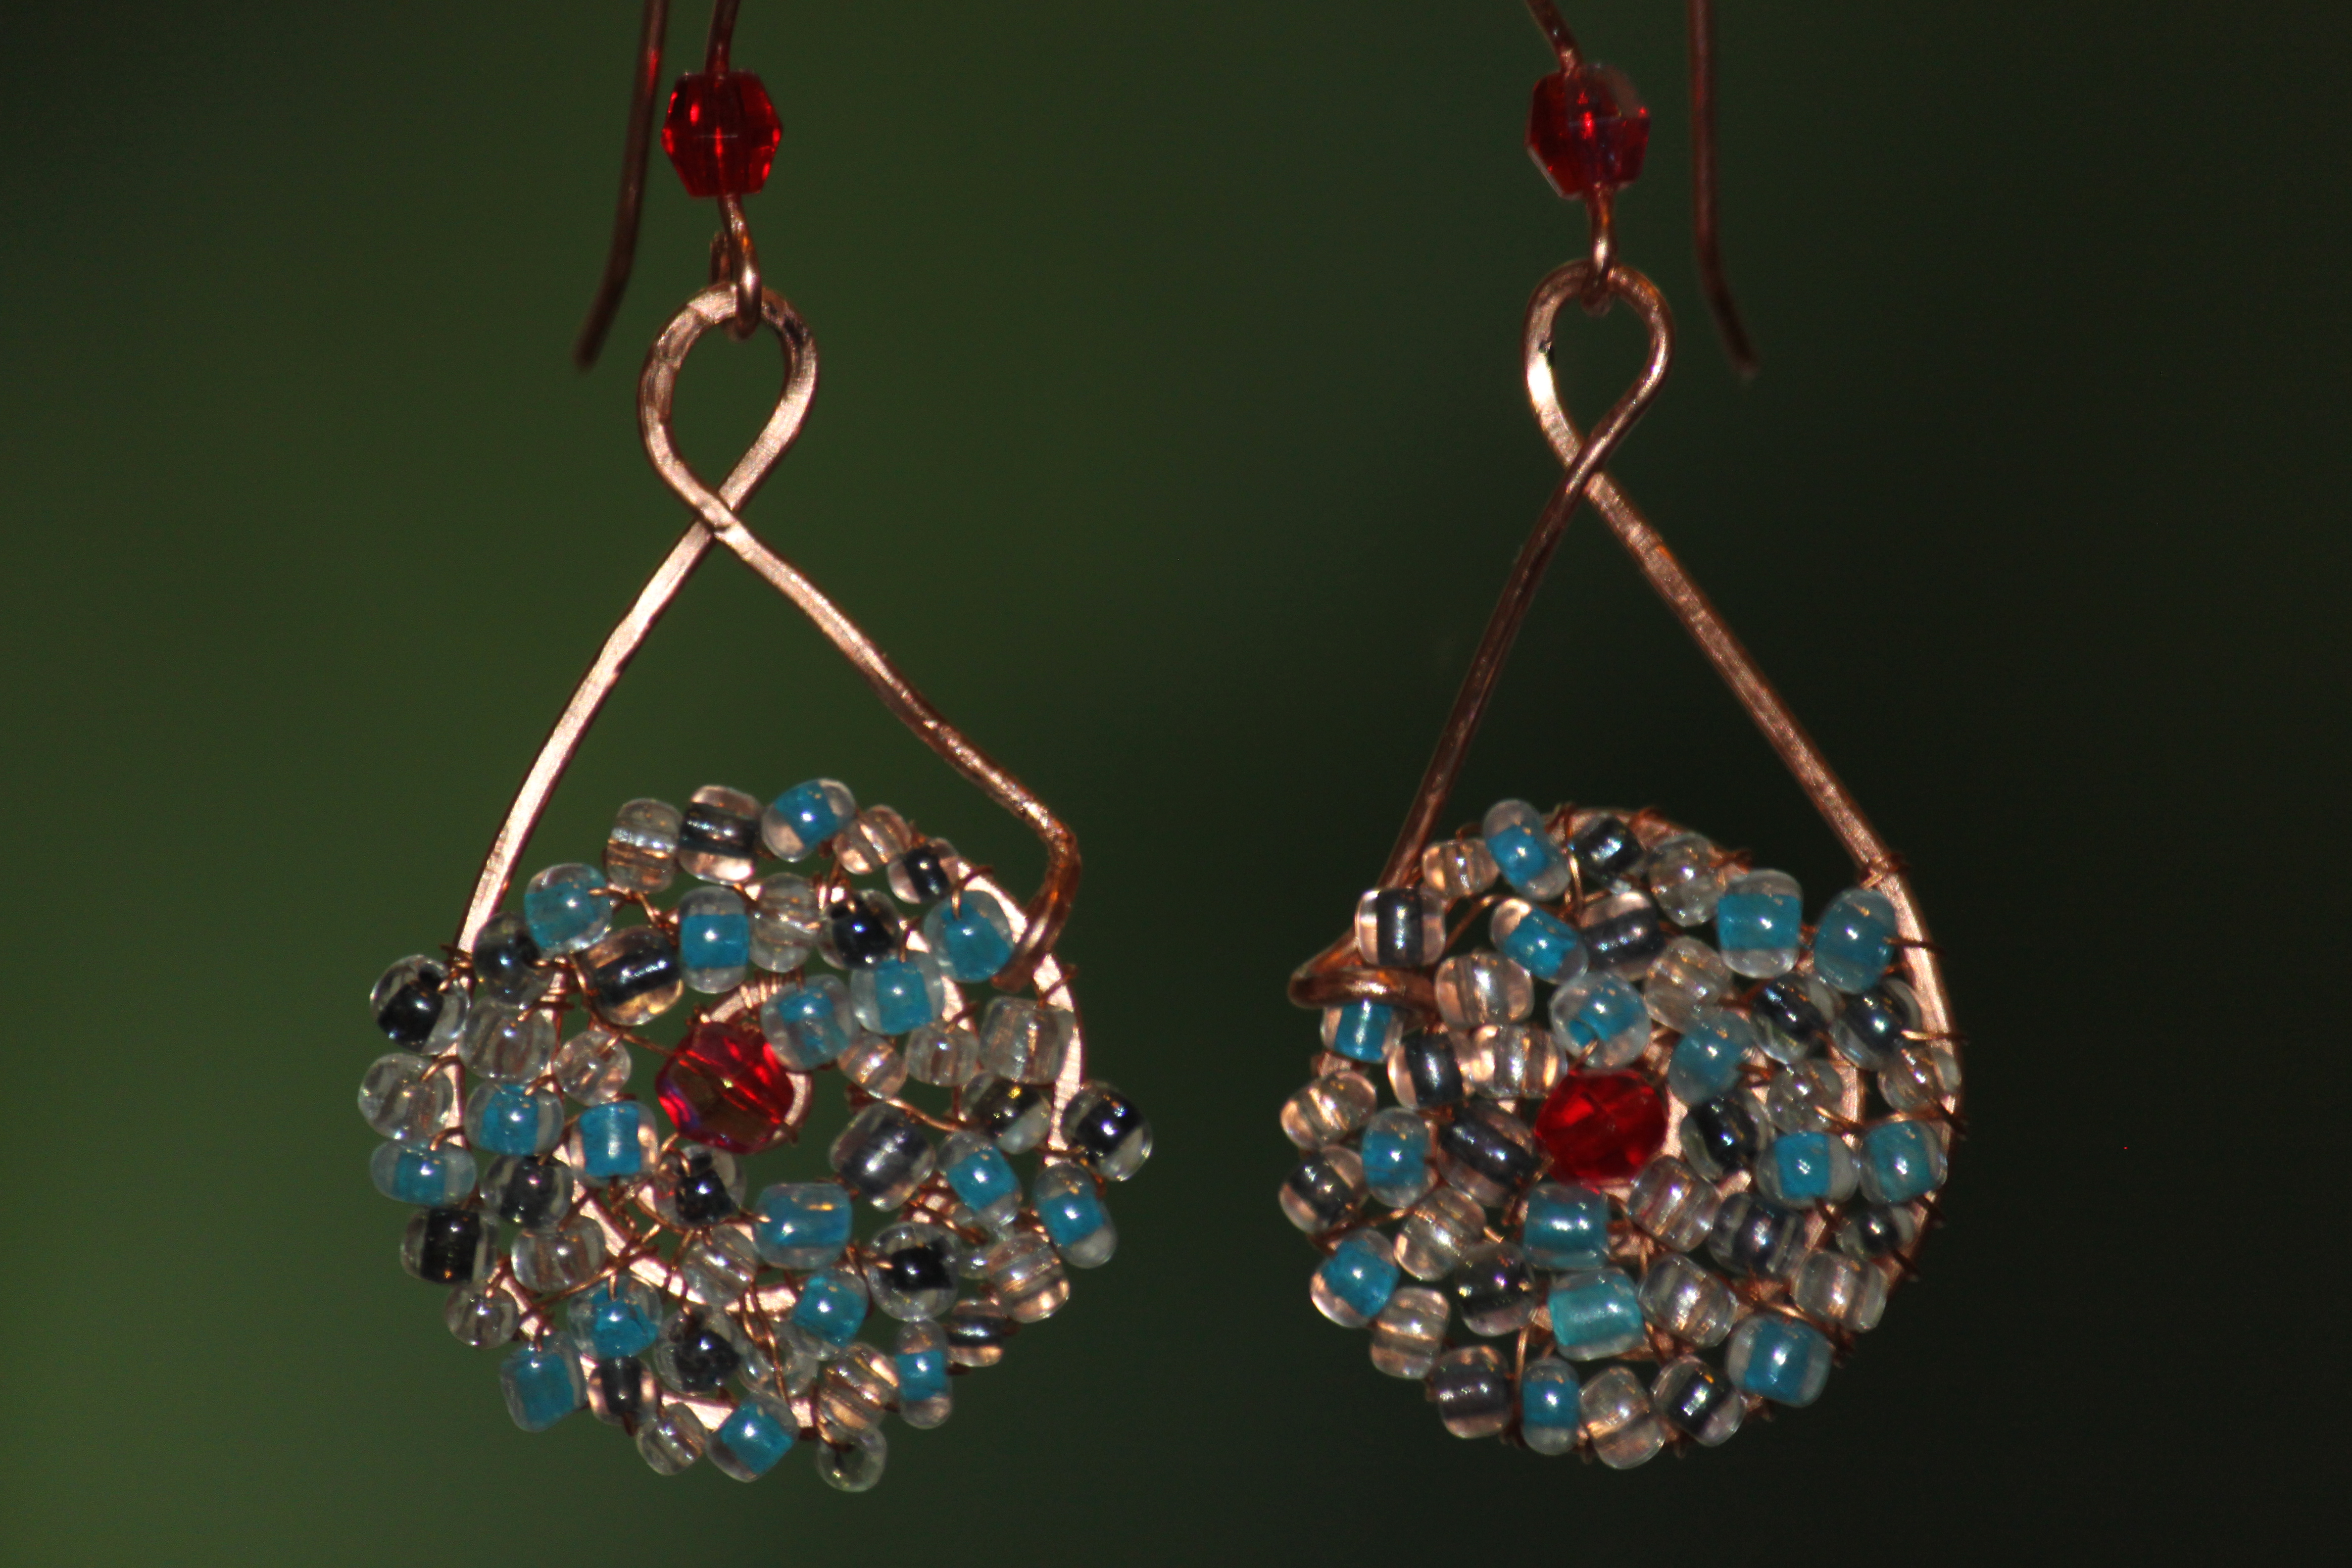 Earrings - wrapped with glass beads